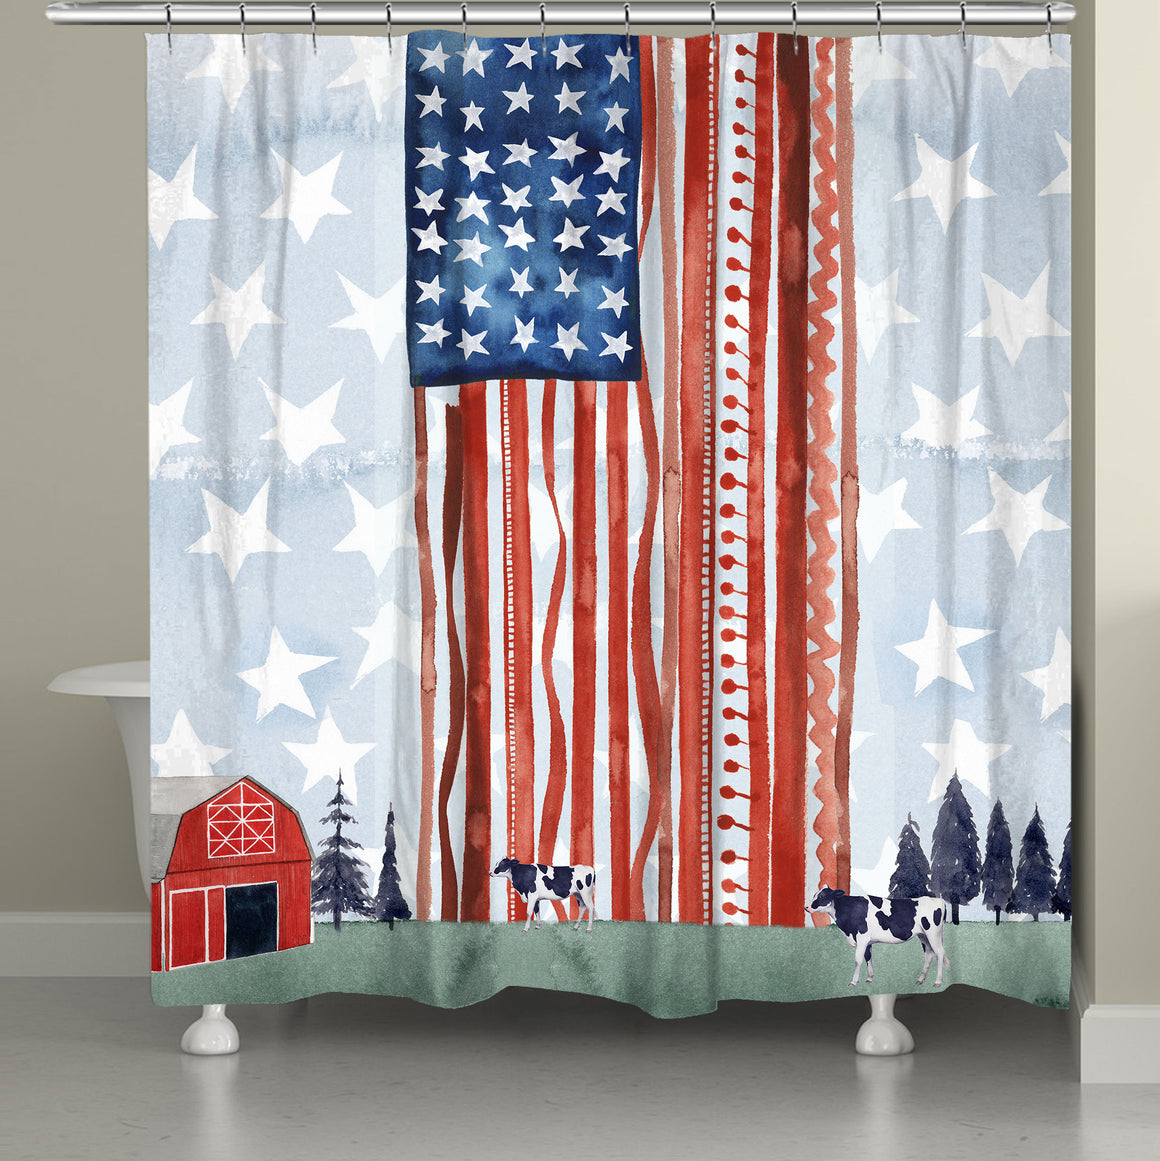 [shower curtains]